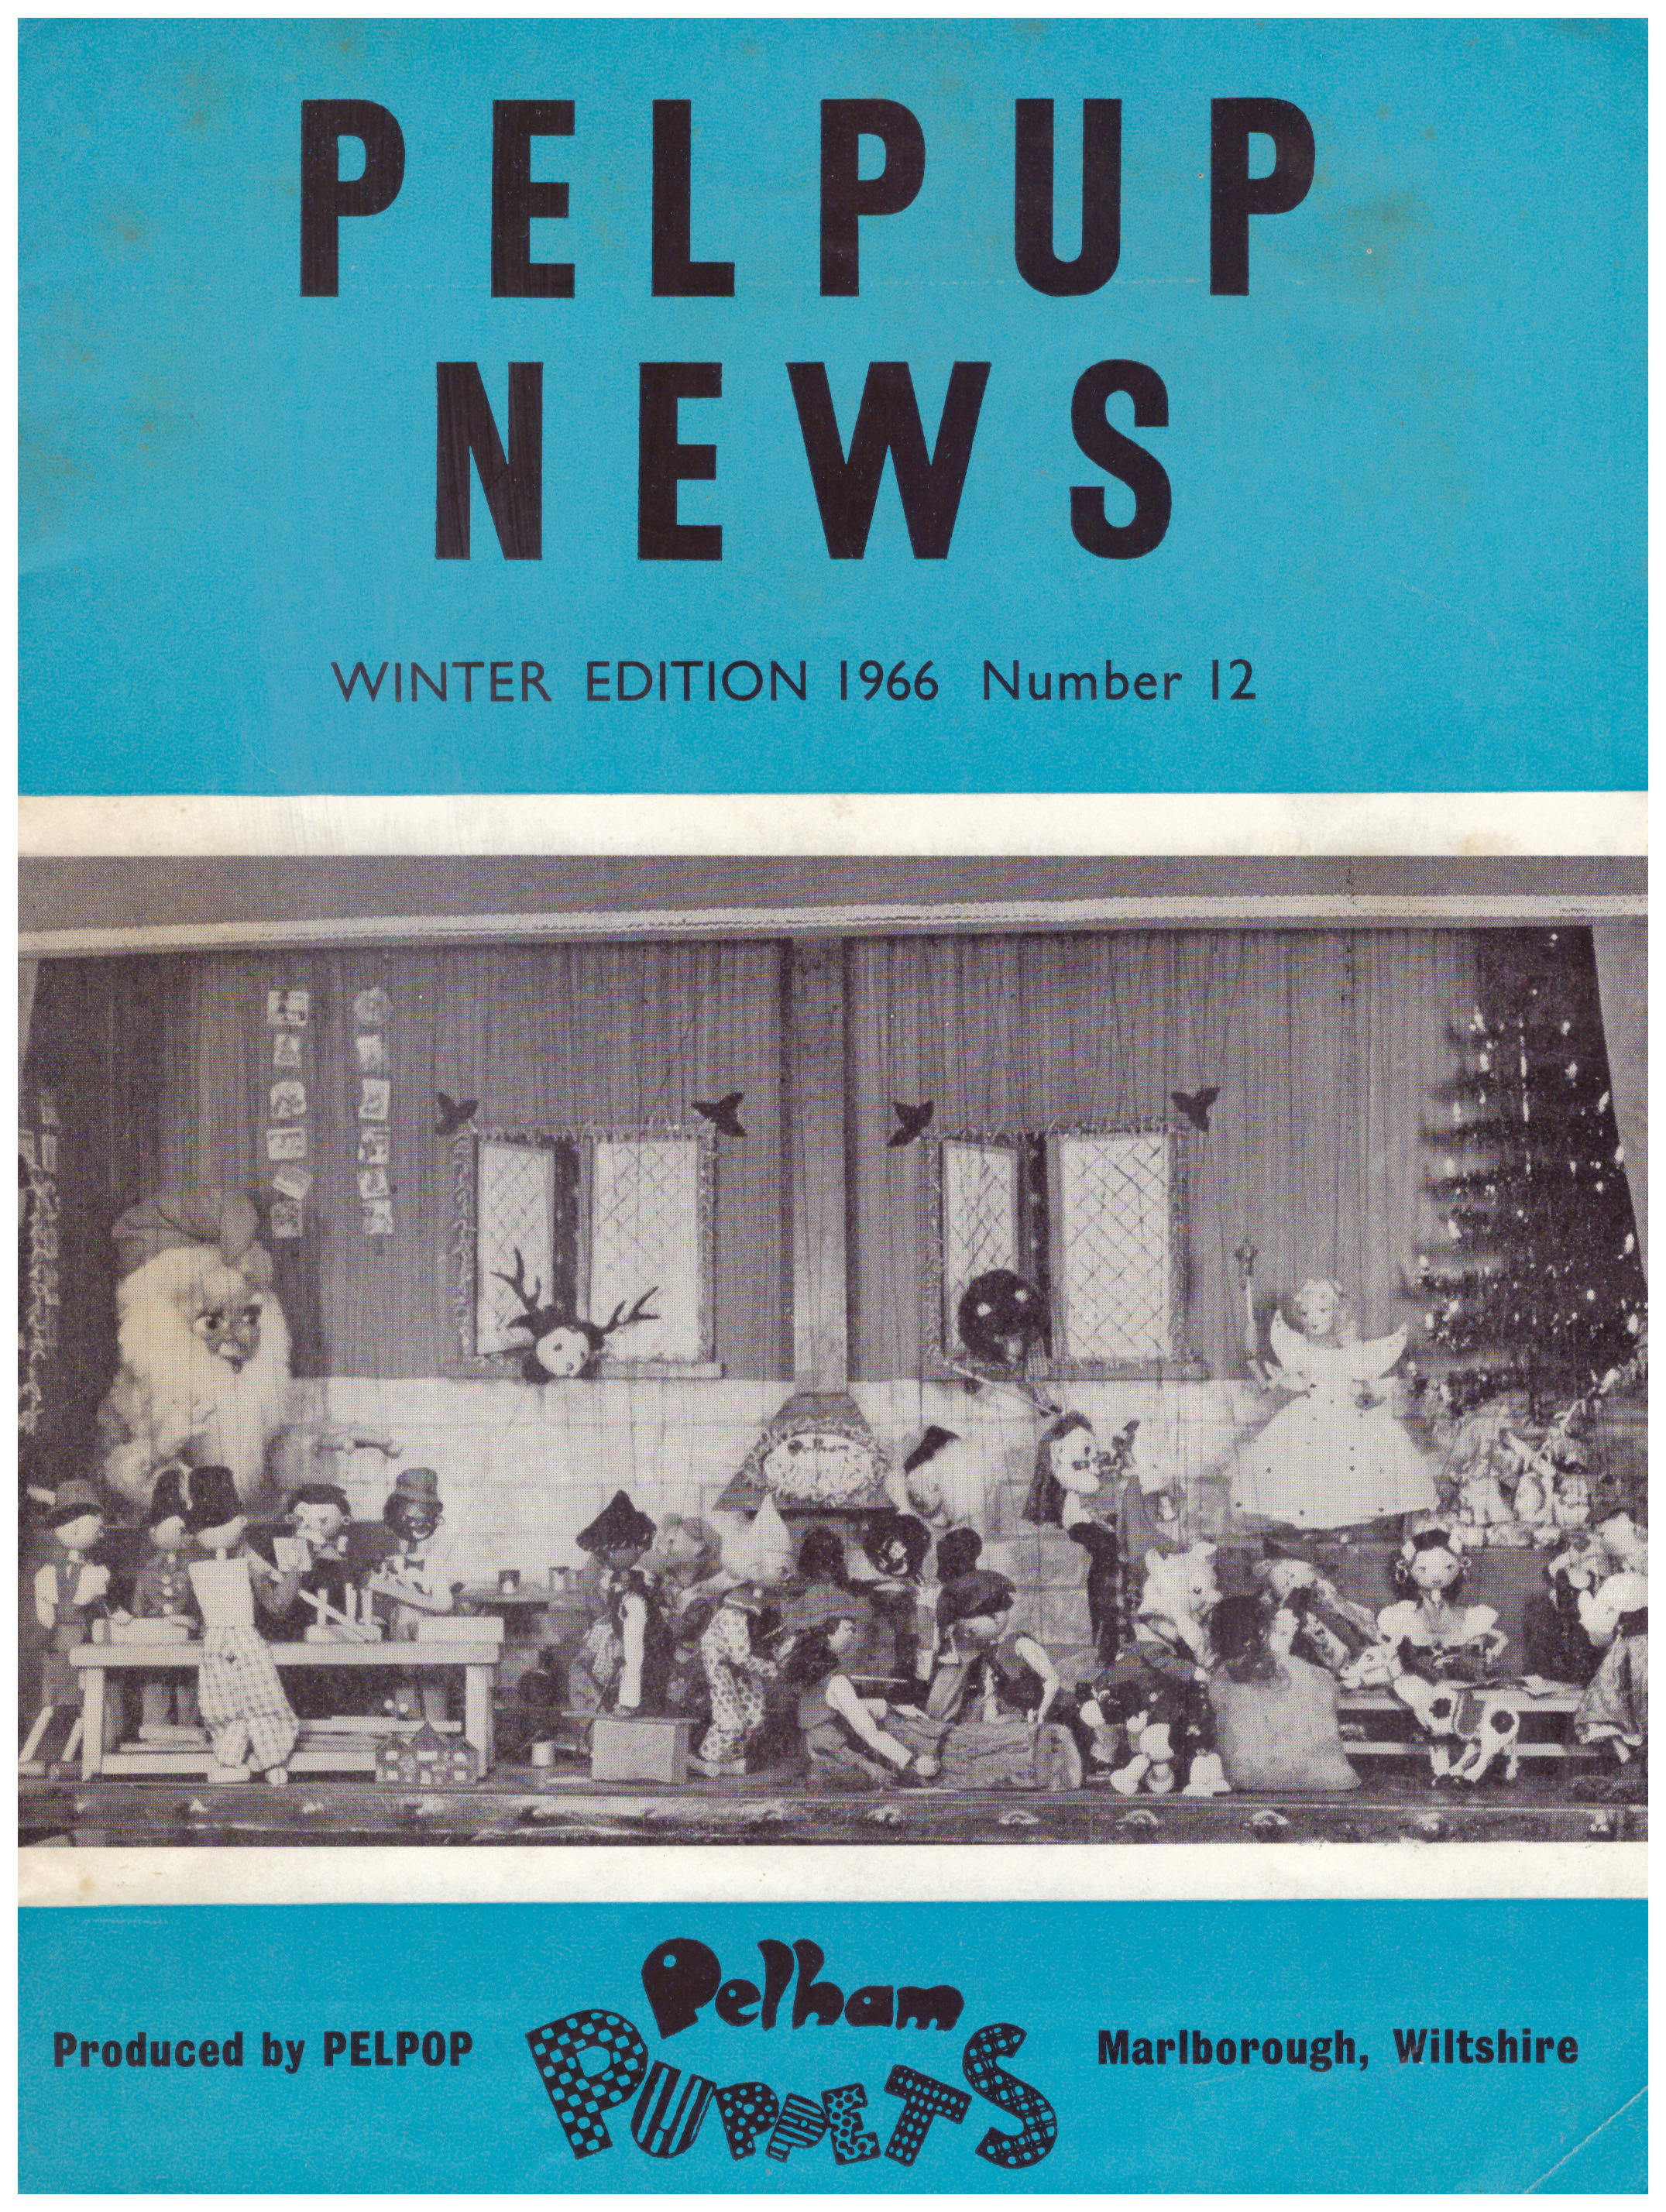 Winter Edition 1966 Number 12